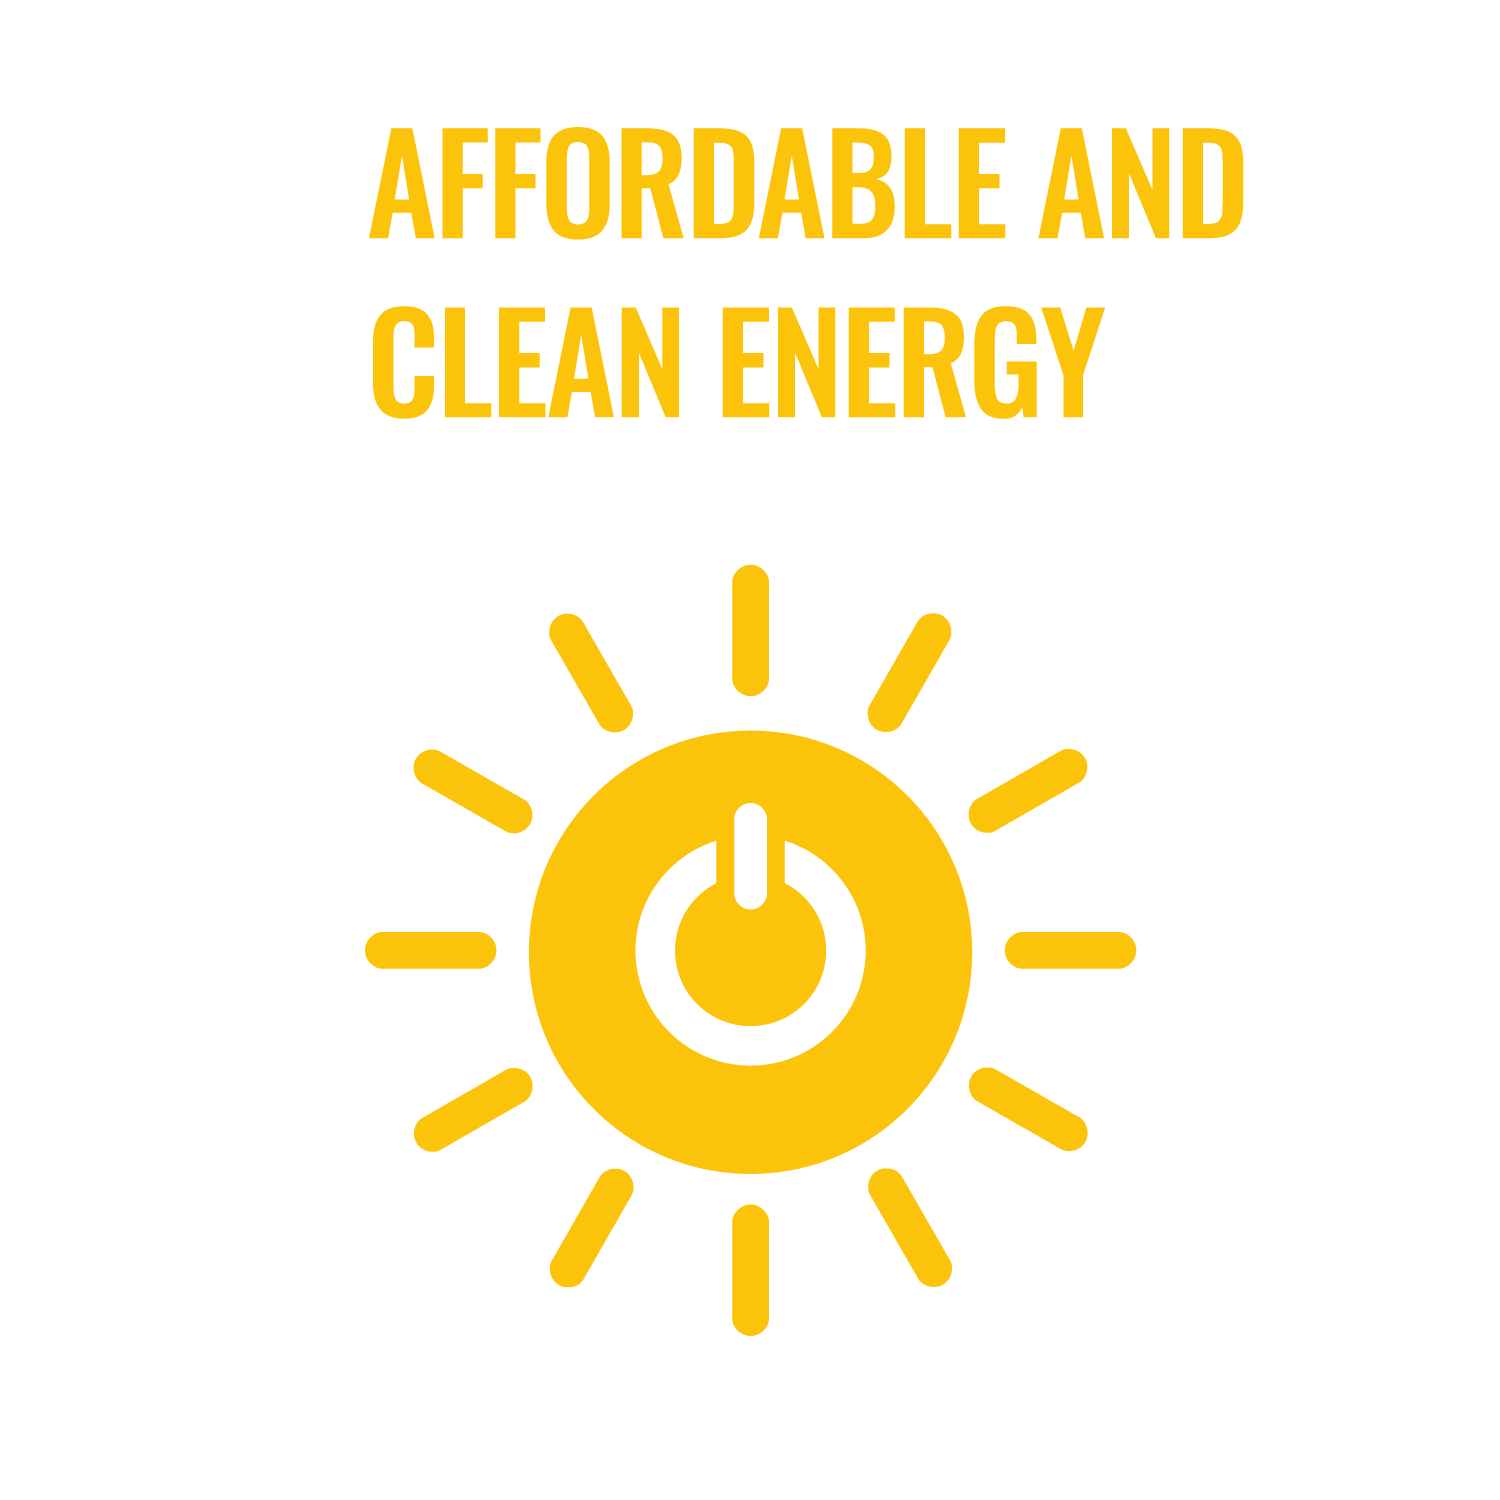 UN Goal 7 Affordable & Clean Energy